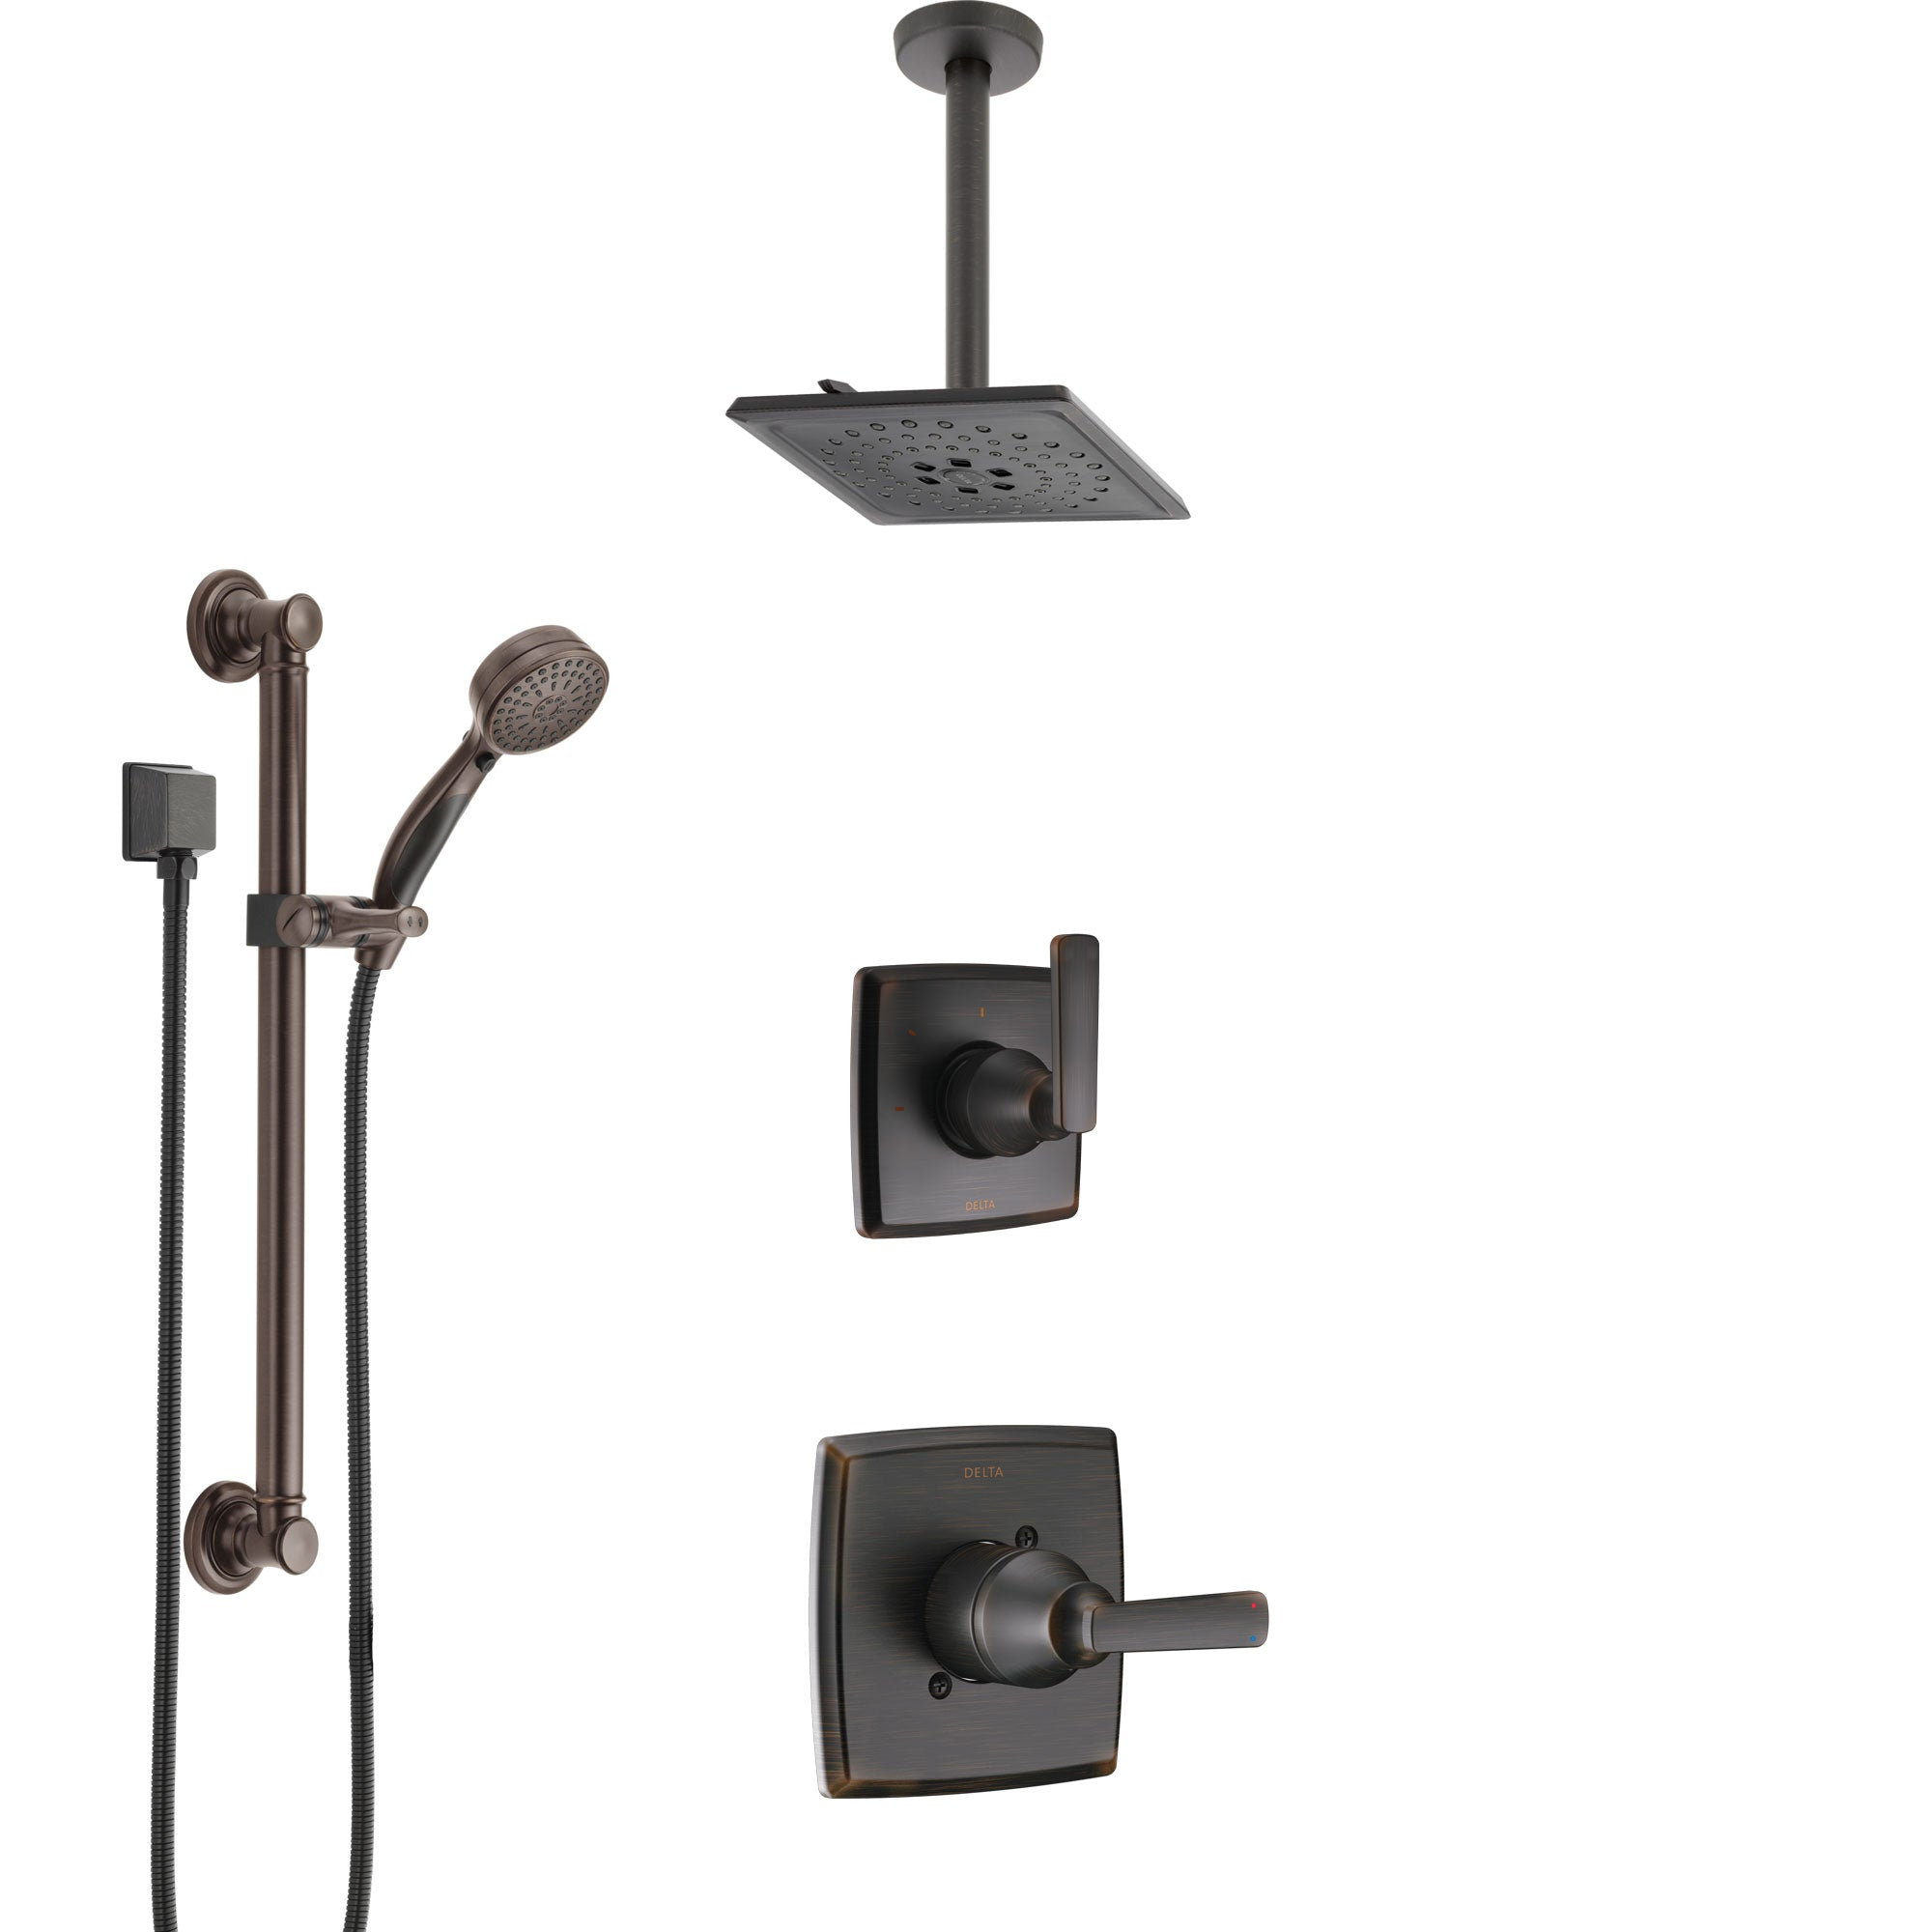 Delta Ashlyn Venetian Bronze Shower System with Control Handle, 3-Setting Diverter, Ceiling Mount Showerhead, and Hand Shower with Grab Bar SS1464RB4